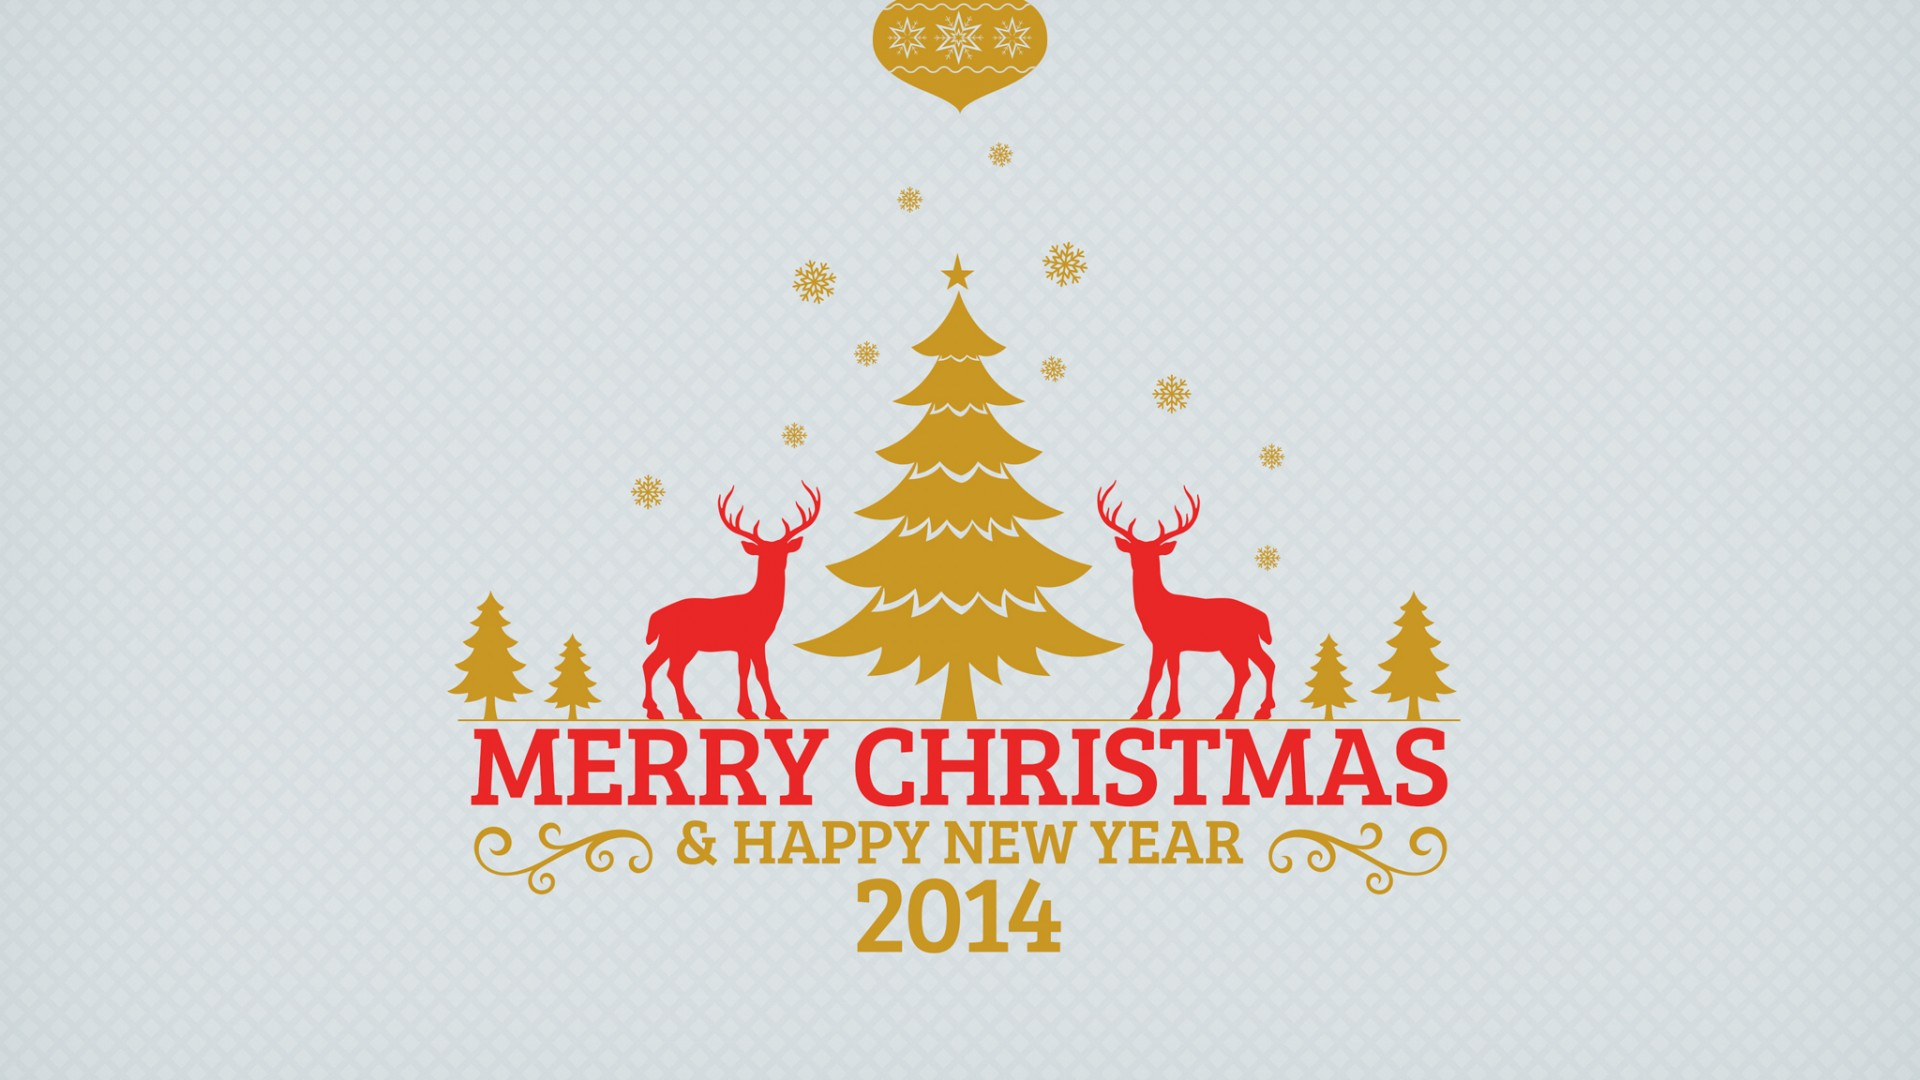 Merry Christmas Trees And Reindeers 2014